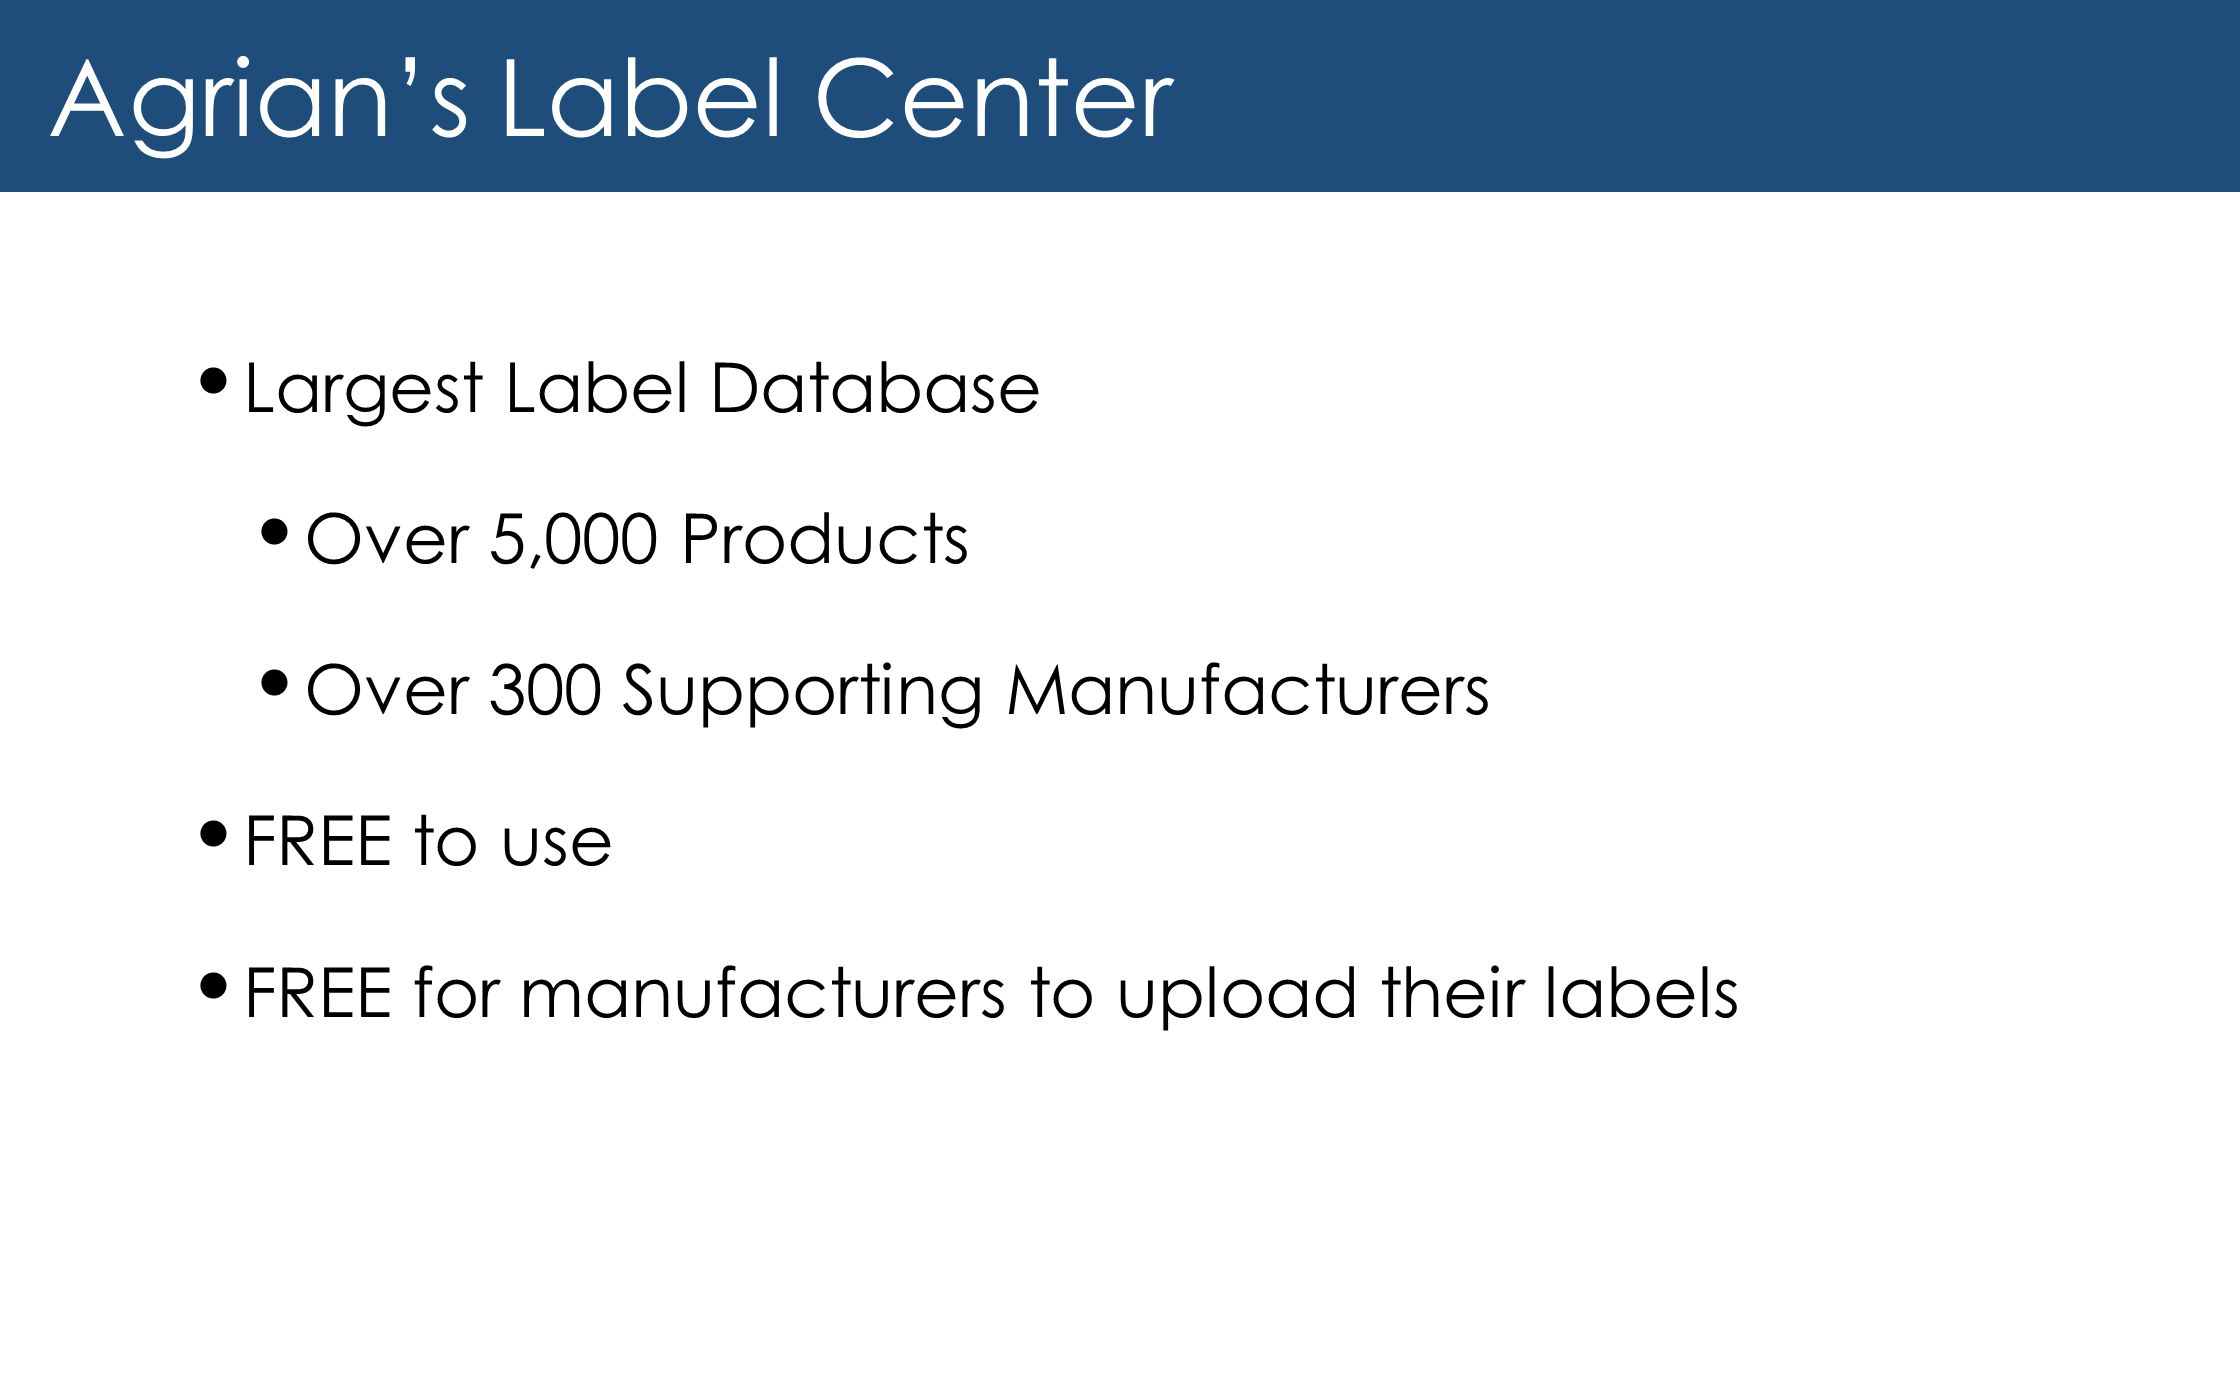 Agrian's Label Center Largest Label Database Over 5,000 Products